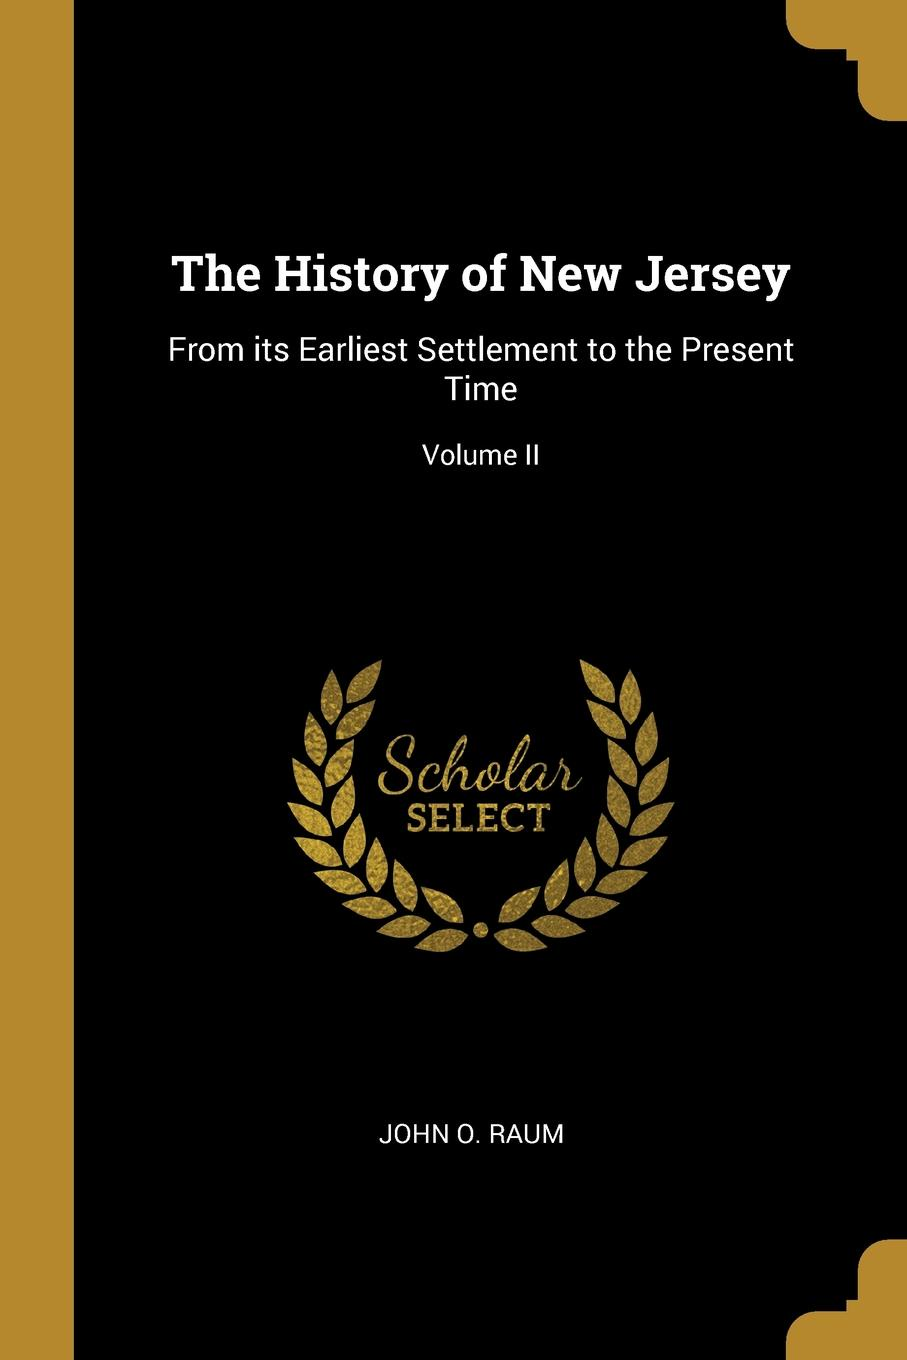 The History of New Jersey. From its Earliest Settlement to the Present Time; Volume II